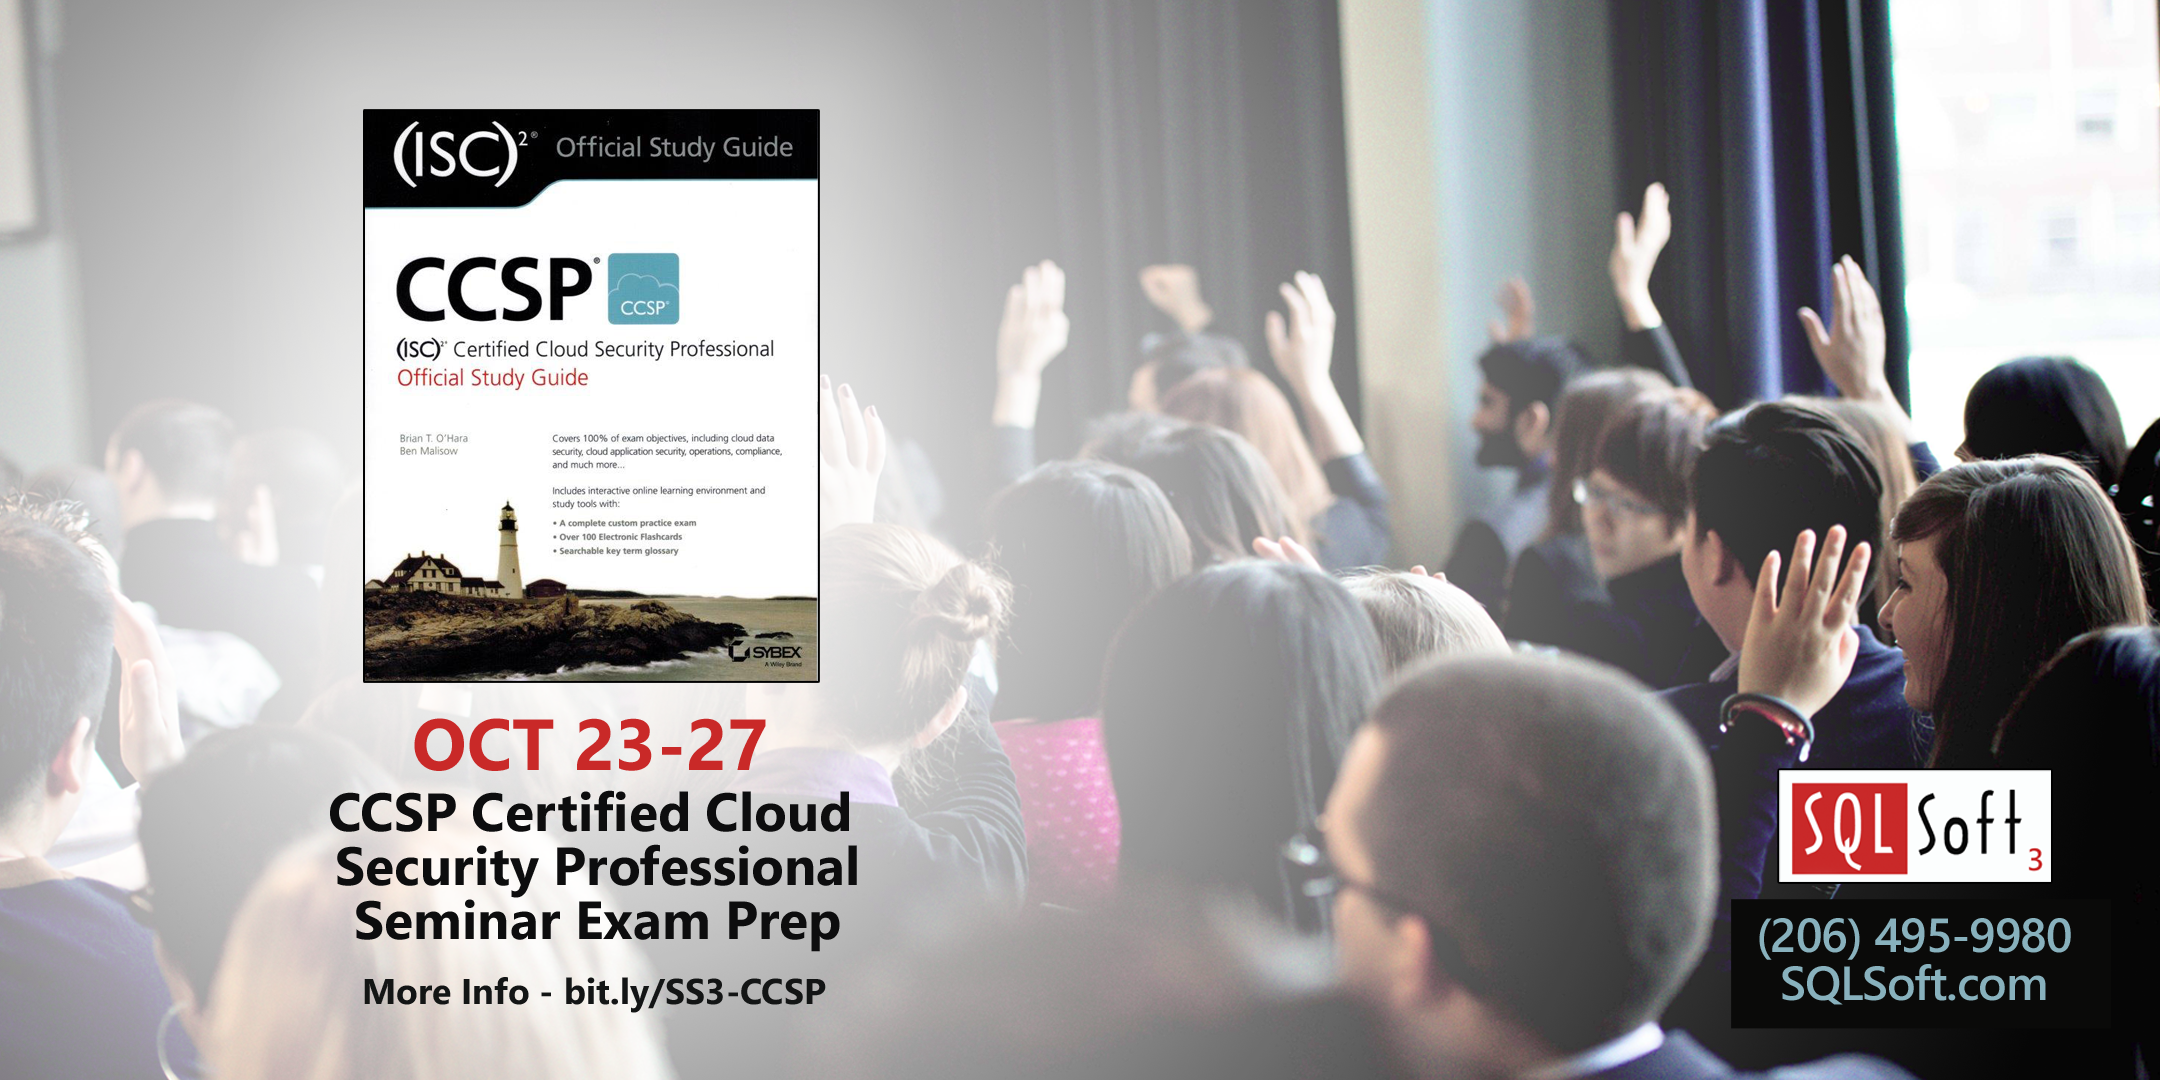 Ccsp certified cloud security professional seminar and exam prep eventbrite m xflitez Gallery